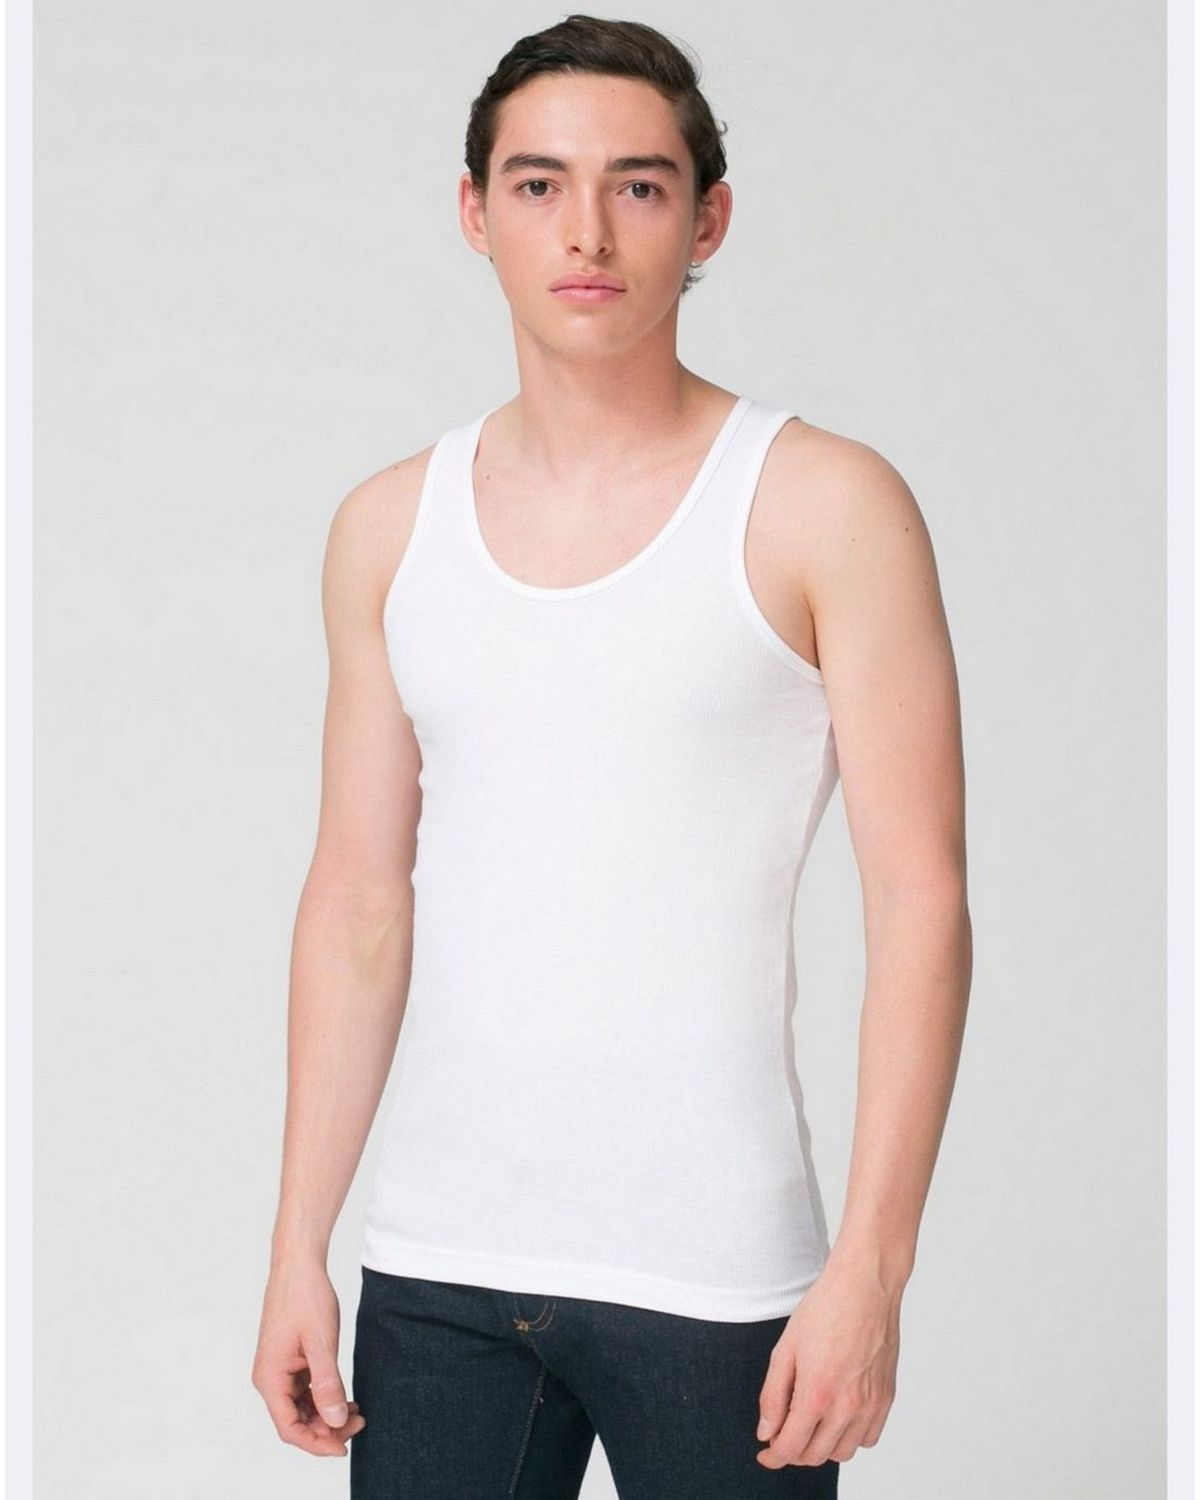 American Apparel 3408 Unisex Rib Tank Top - White - L 3408